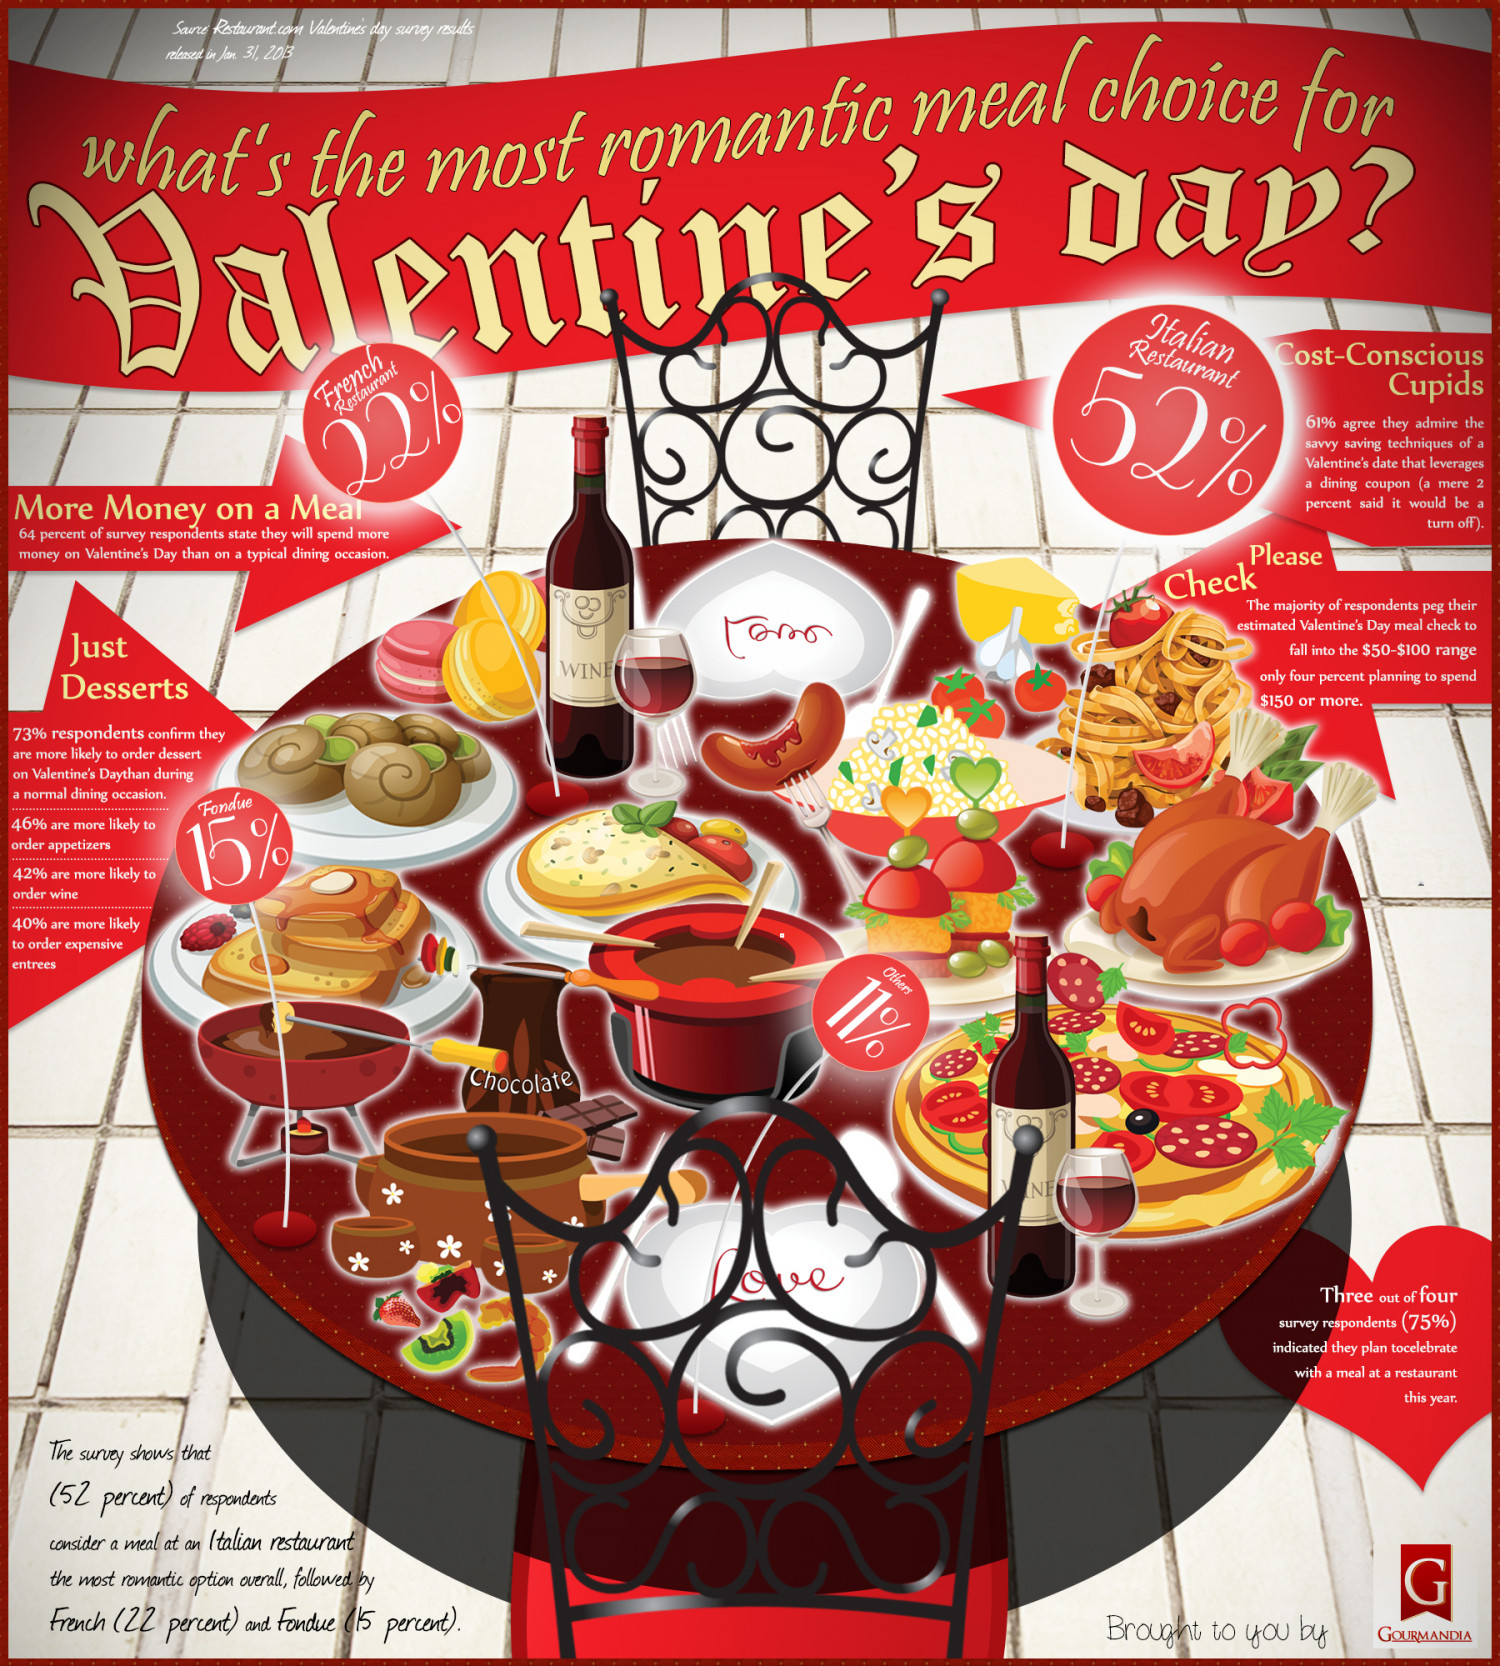 Most romantic meal choices for Valentine's Day Infographic